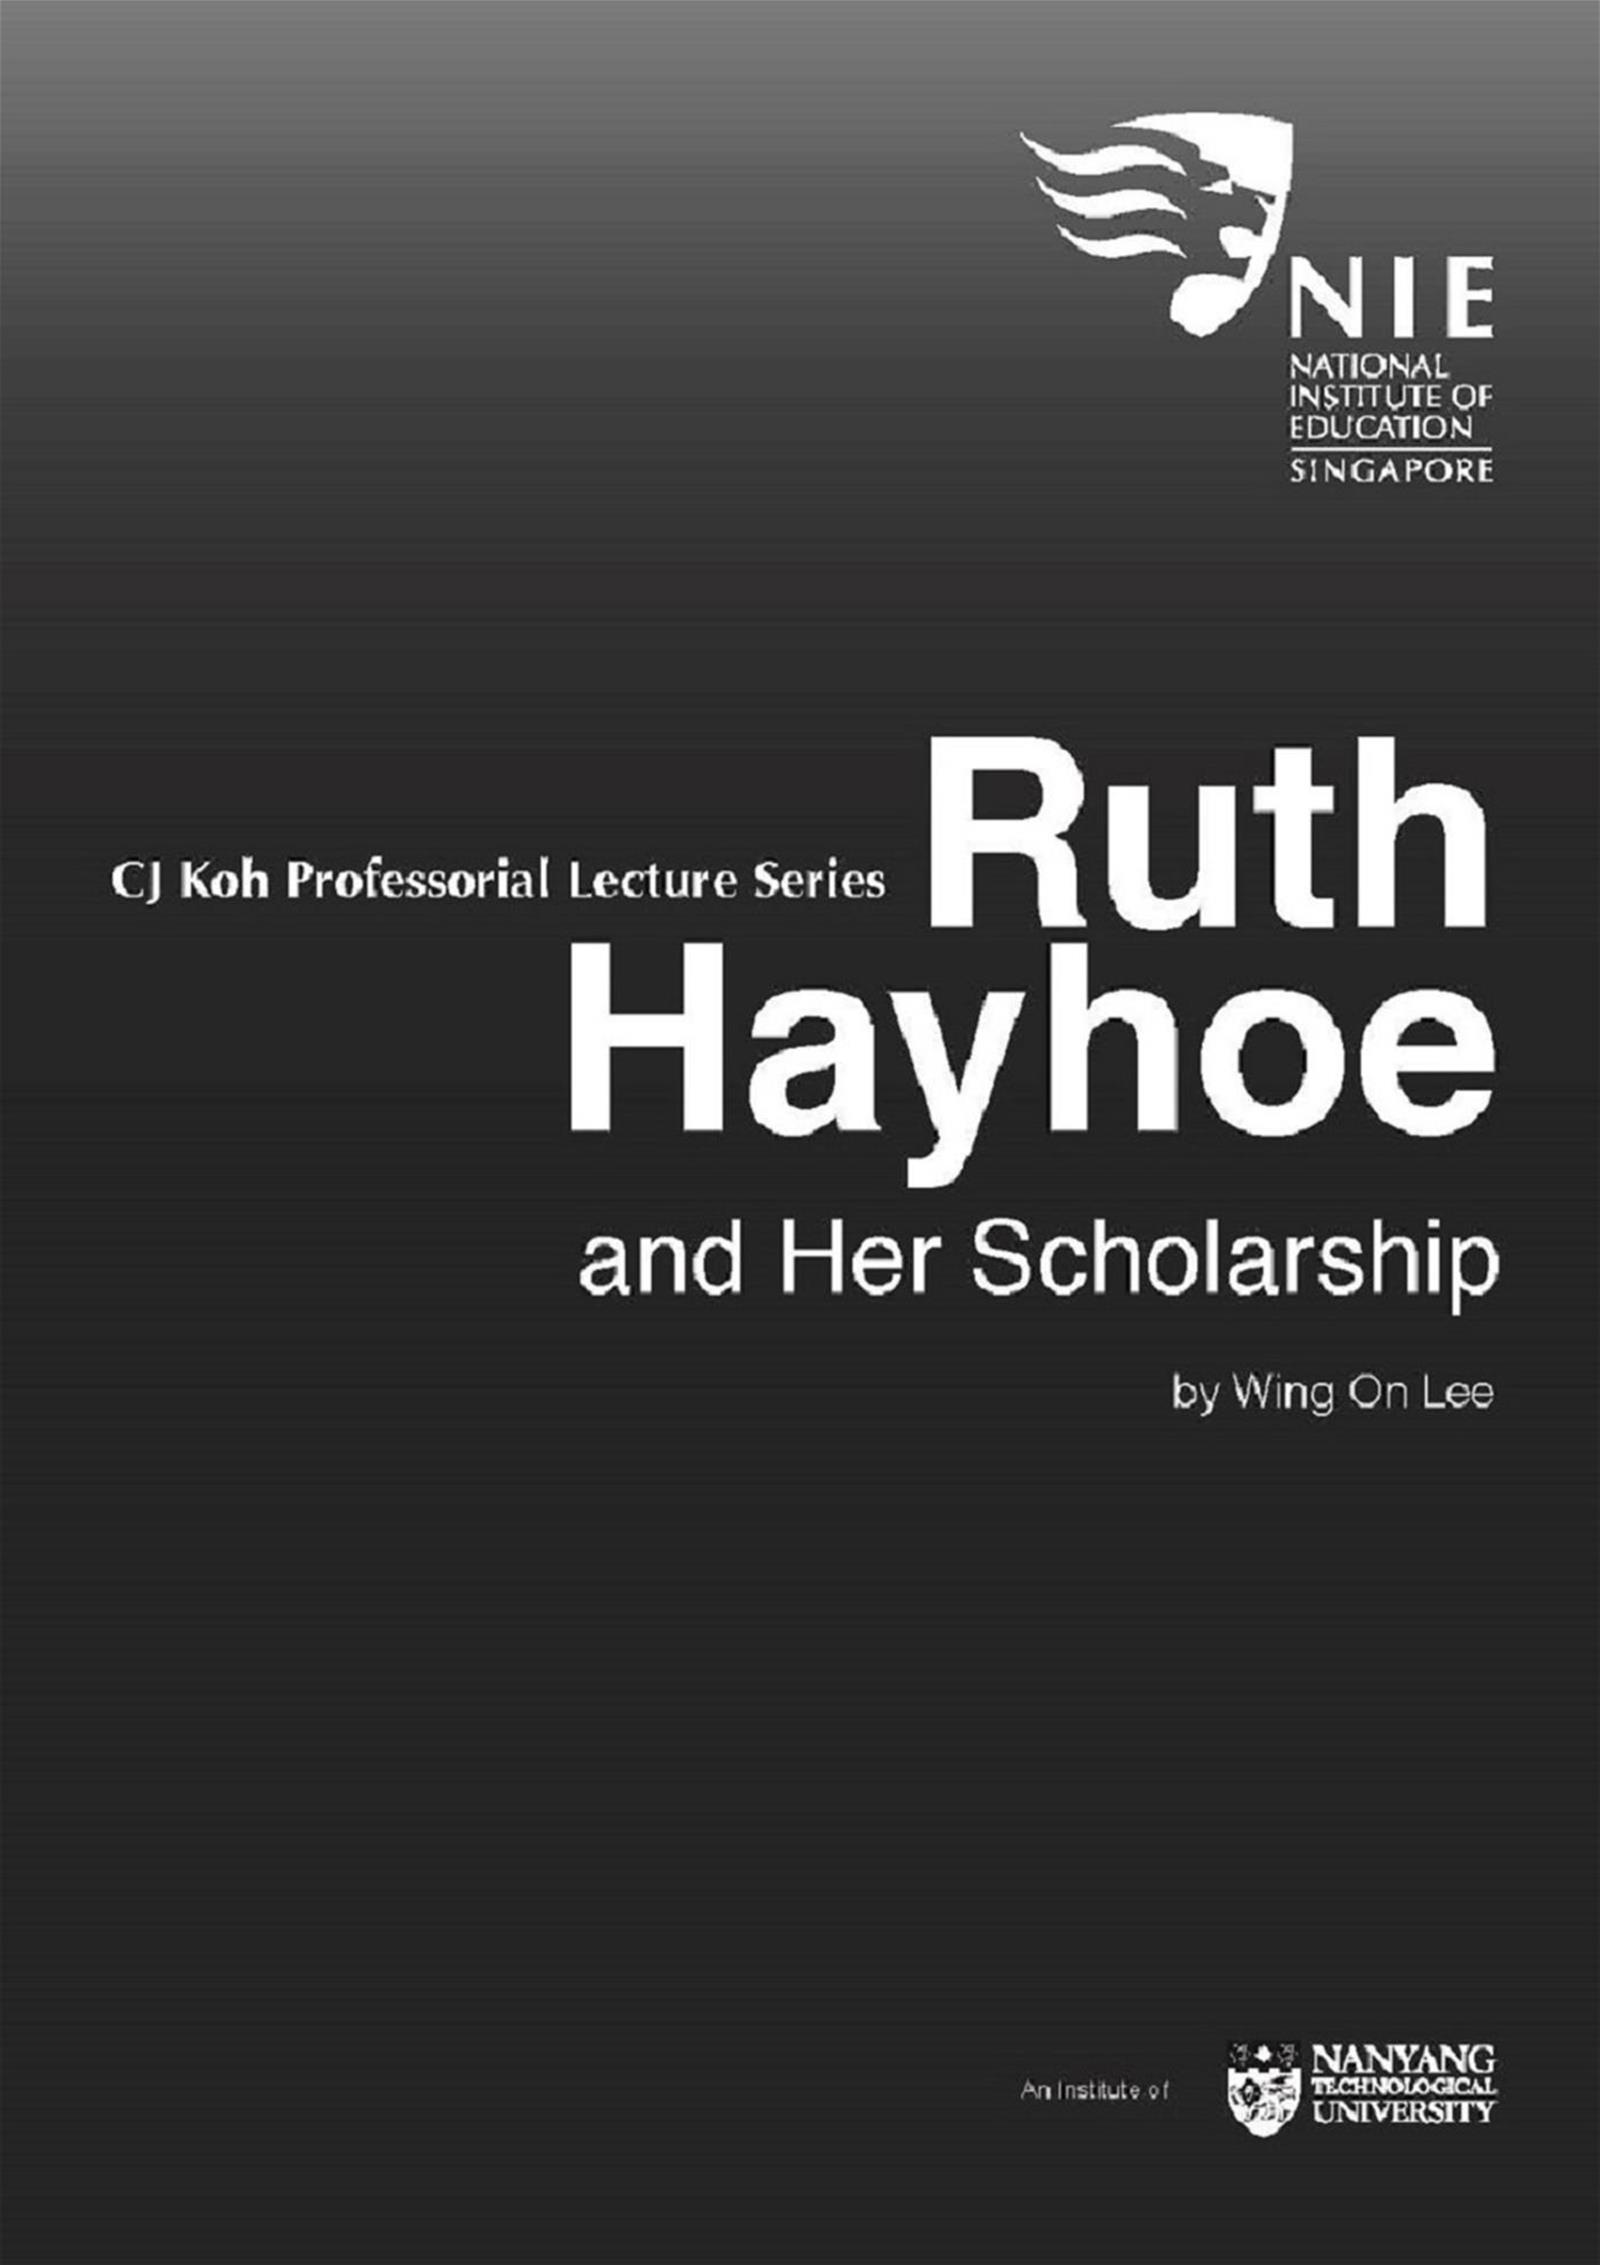 hayhoebooklet_cover_page_01 v3